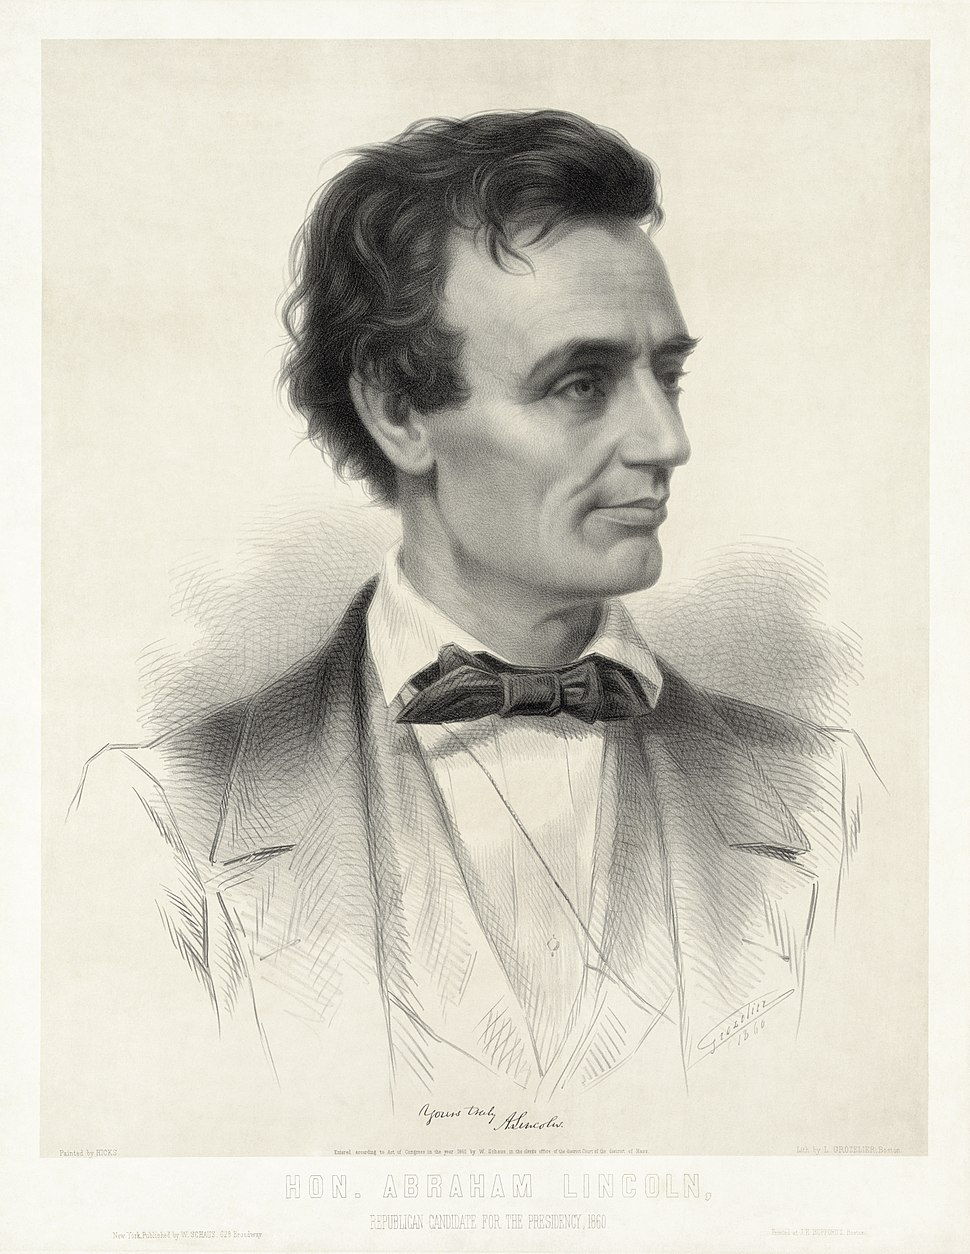 Thomas Hicks - Leopold Grozelier - Presidential Candidate Abraham Lincoln 1860 - cropped to lithographic plate